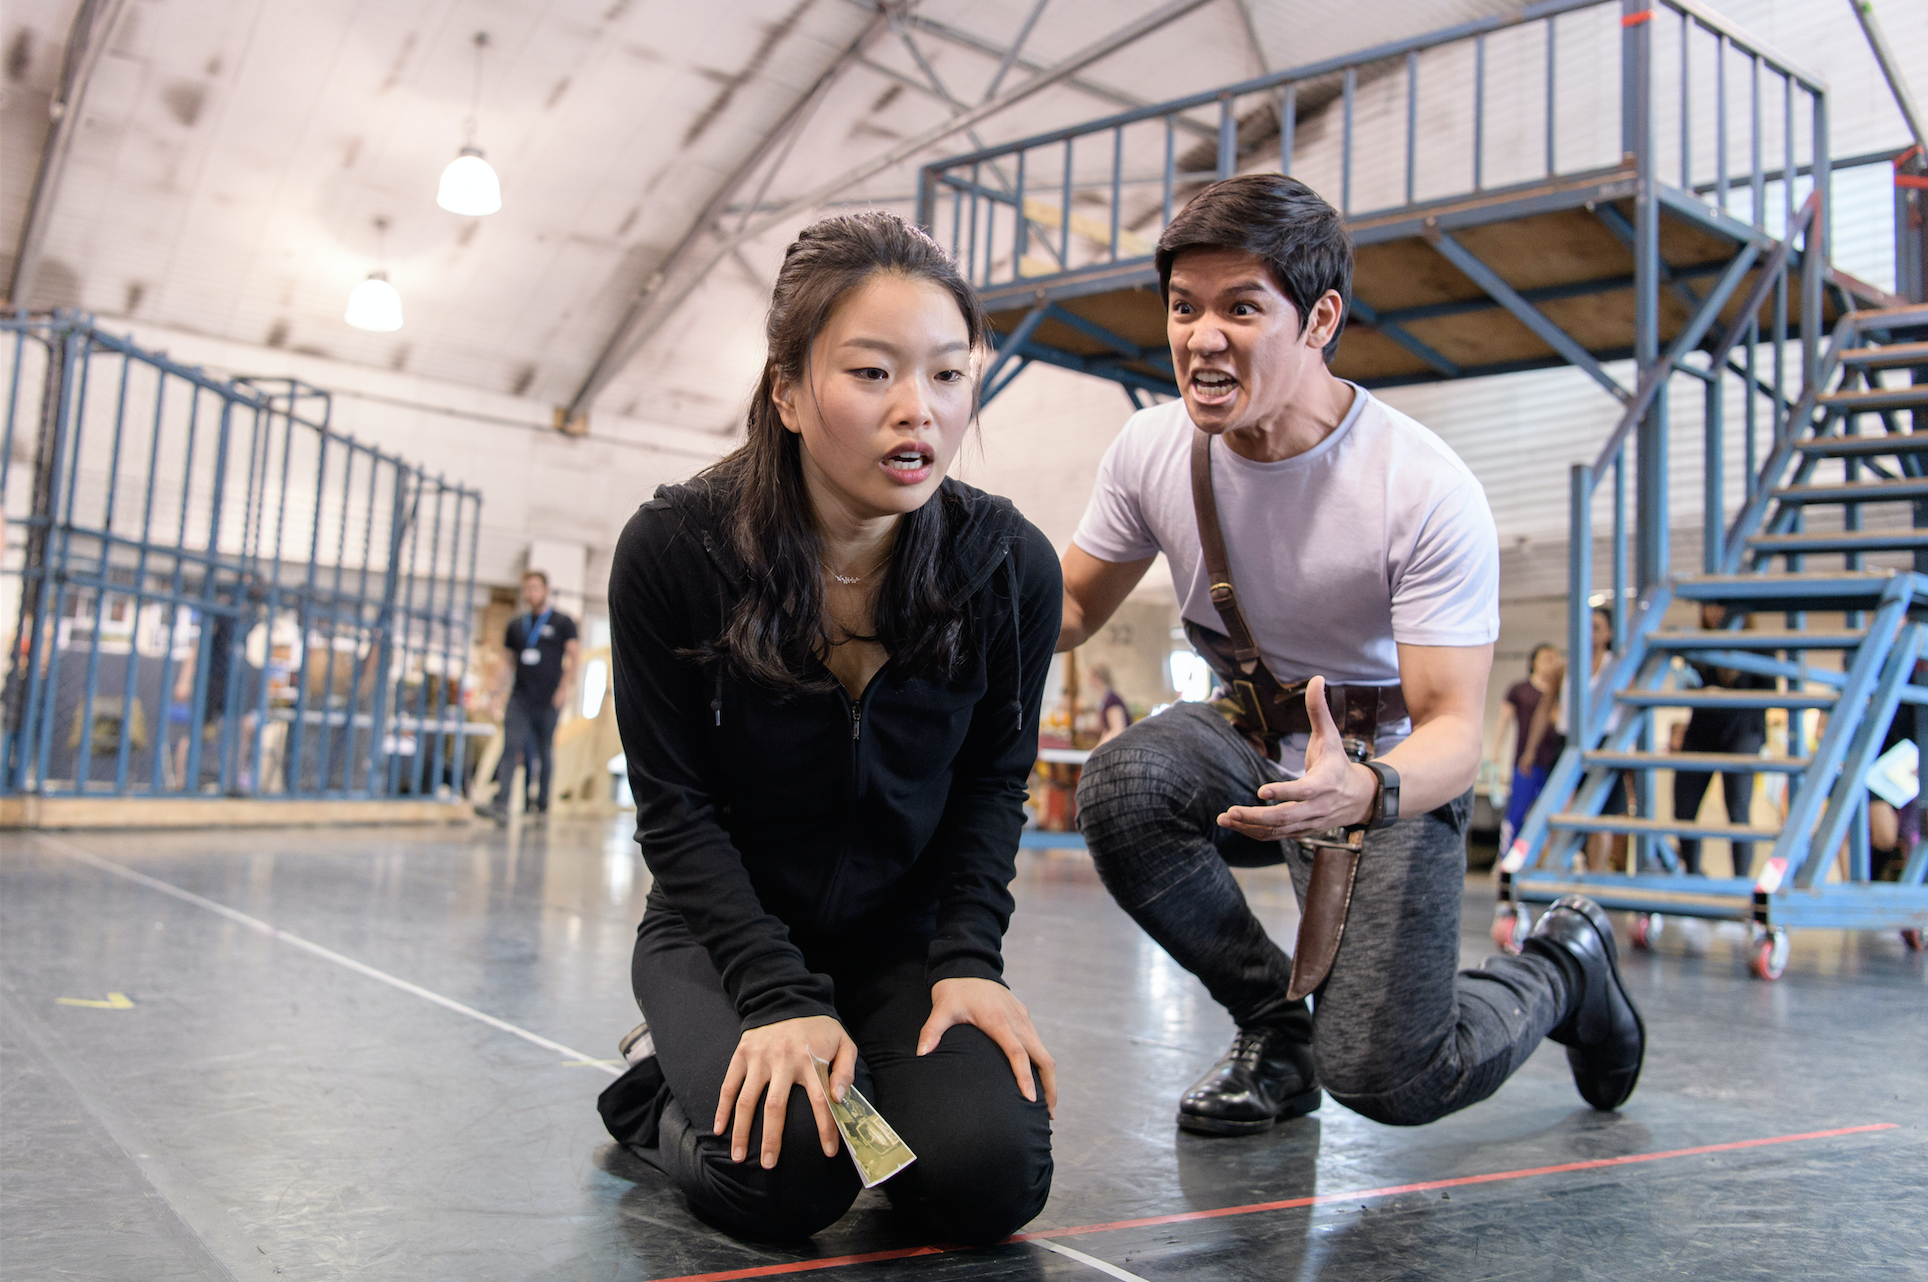 INSIDE | The Heat is on in the Miss Saigon UK Tour Rehearsal Room - Sincerely, Amy